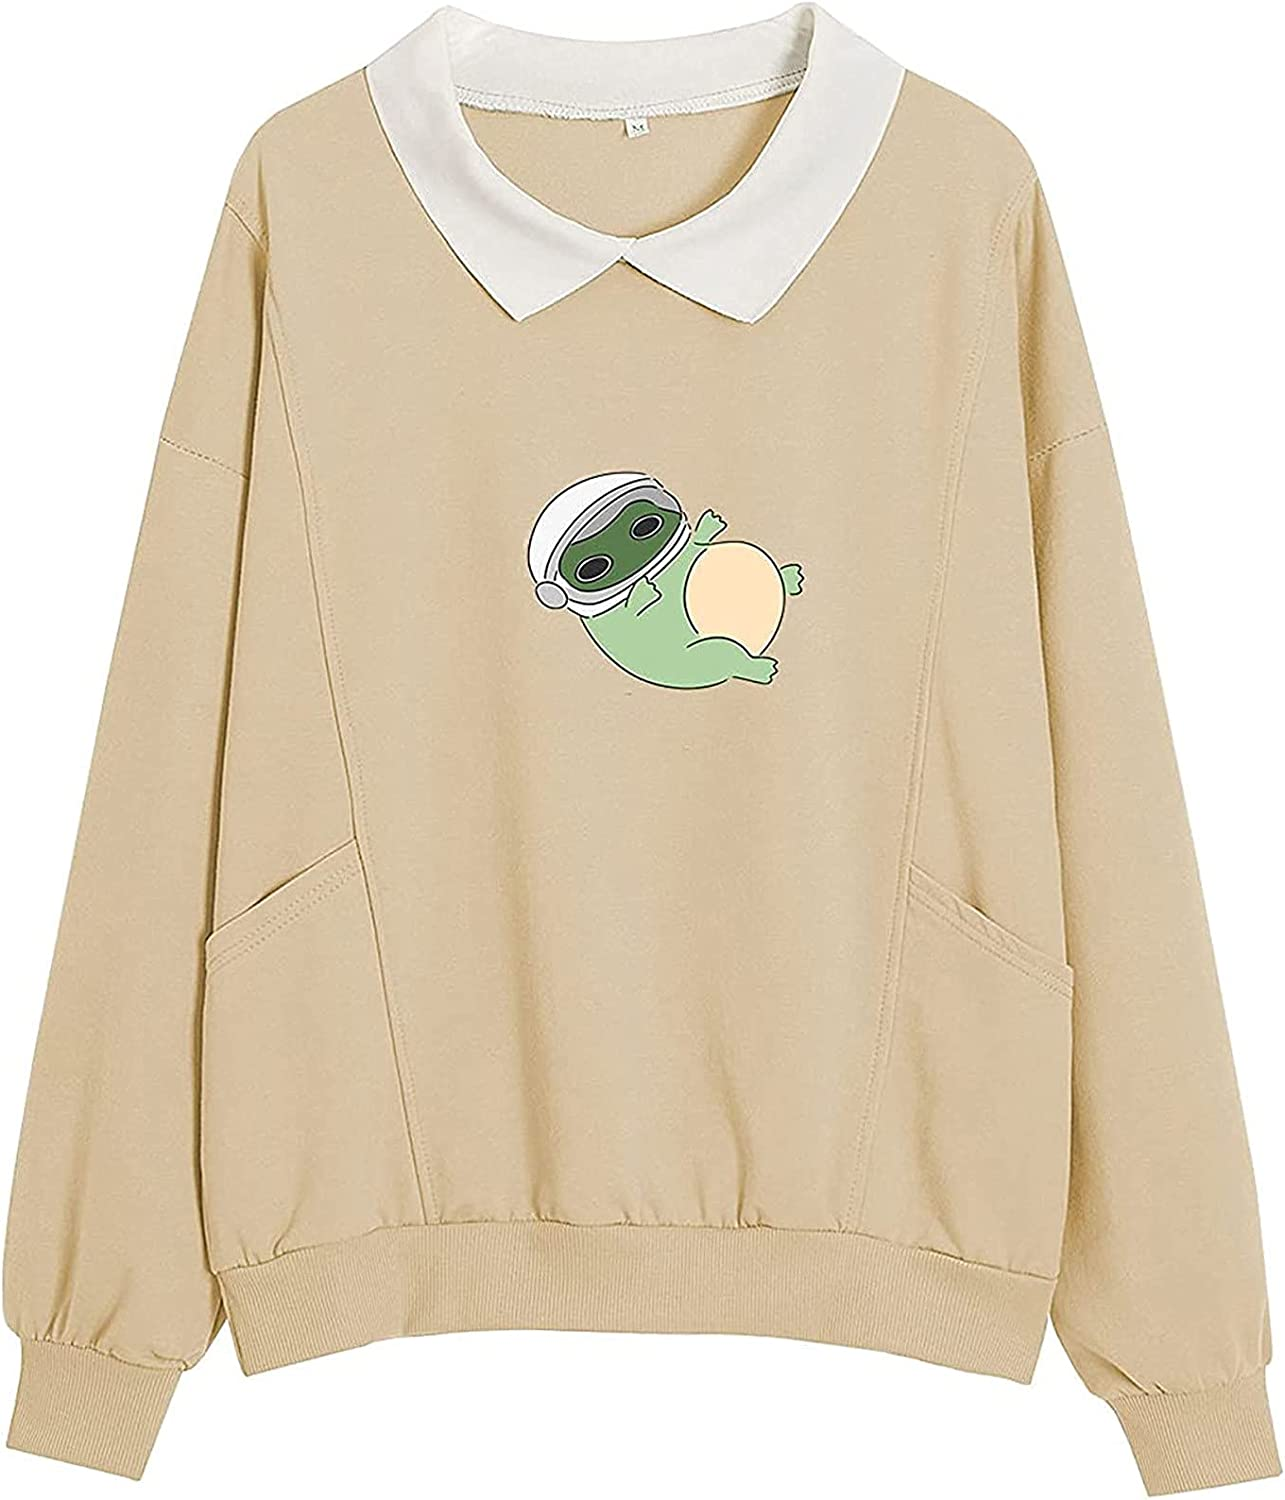 SERCFGYUJ Sweatshirt for Womens Casual Autumn Cute Frog Graphics Blouse Long Sleeve Turn-Down Collar Pullover with Pockets